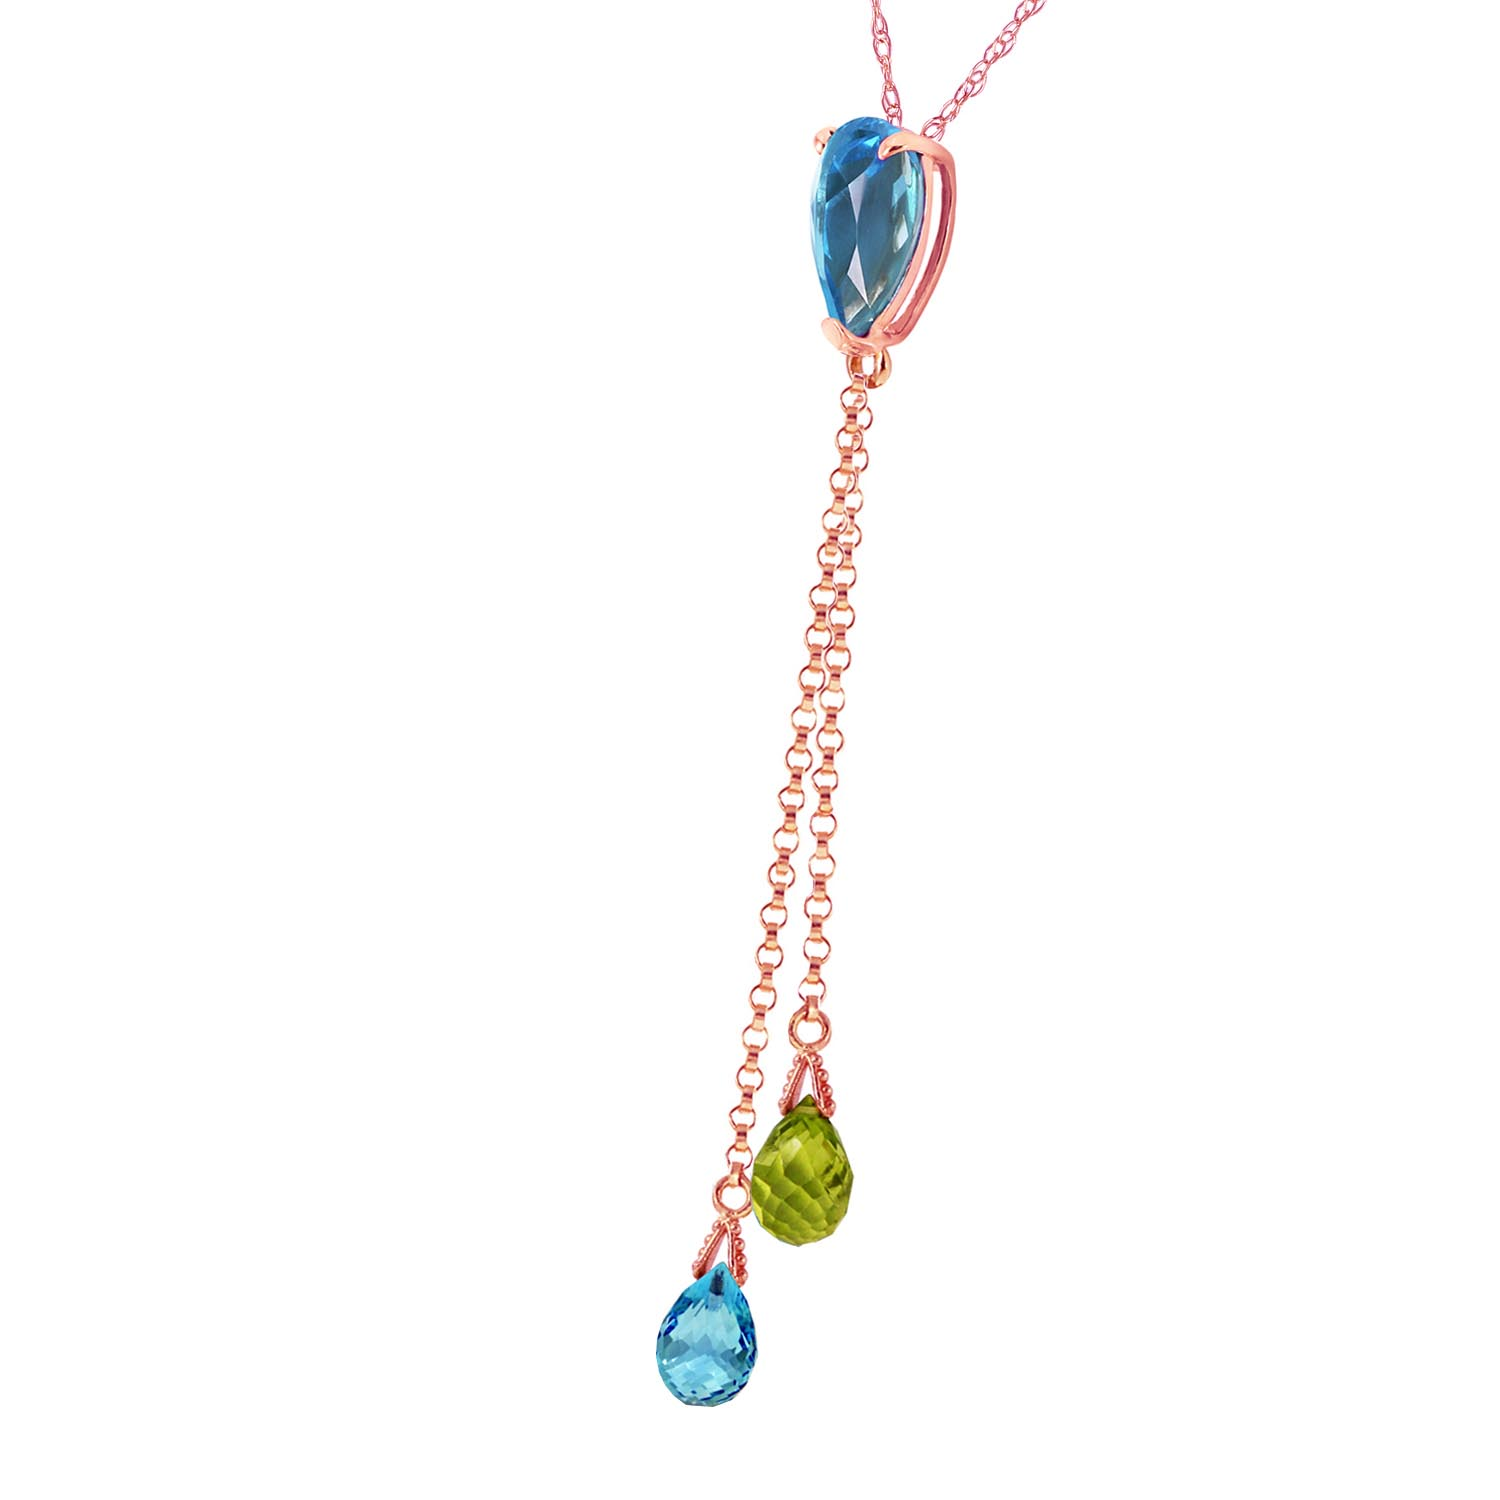 Blue Topaz and Peridot Droplet Pendant Necklace 3.75ctw in 14K Rose Gold